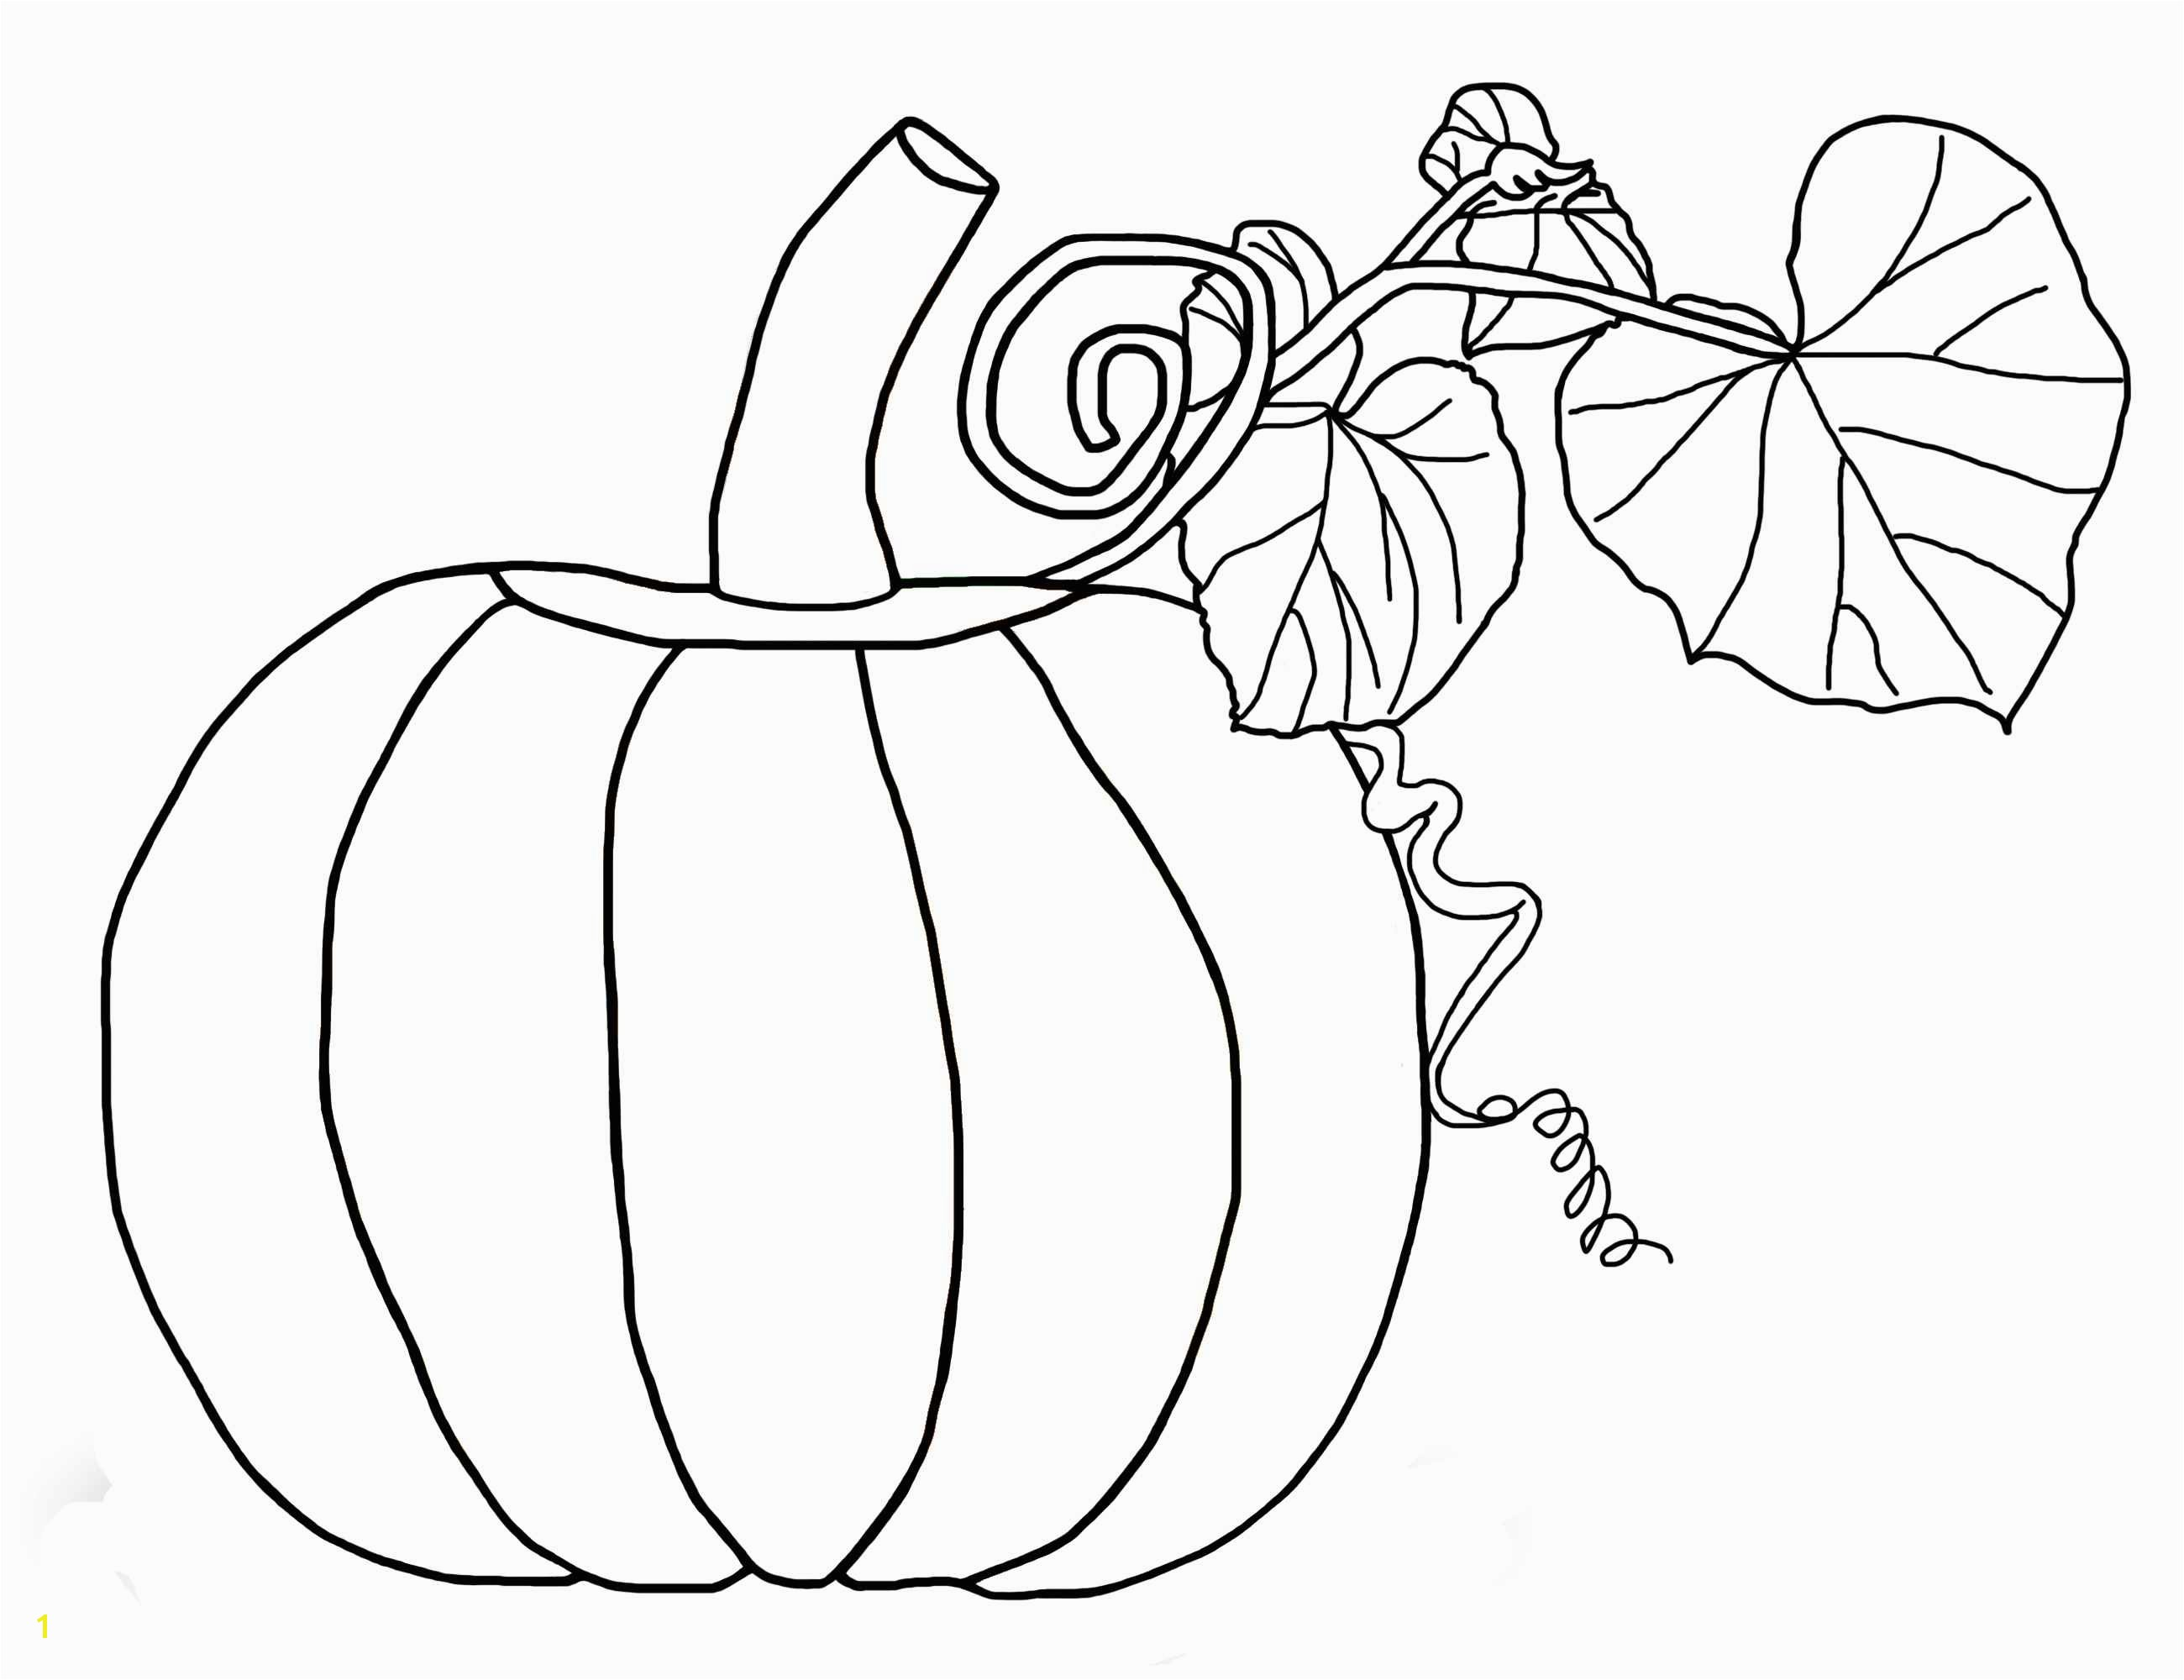 Pumpkin Coloring Pages Pdf 195 Pumpkin Coloring Pages for Kids